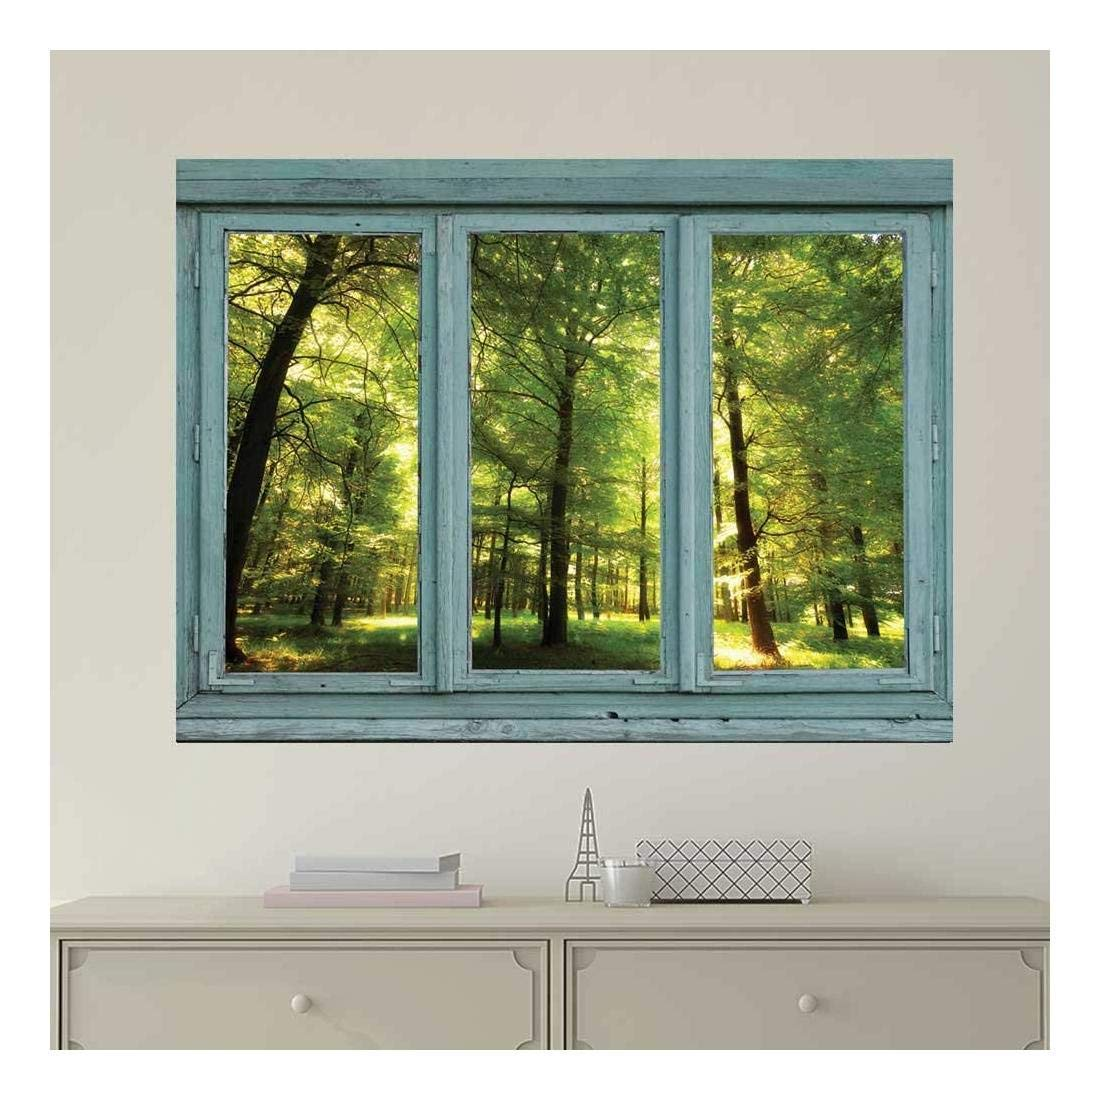 wall26 Vintage Teal Window Looking Out Into a Green Forest and Sun Rays Peeking Through - Wall Mural, Removable Sticker, Home Decor - 24x32 inches